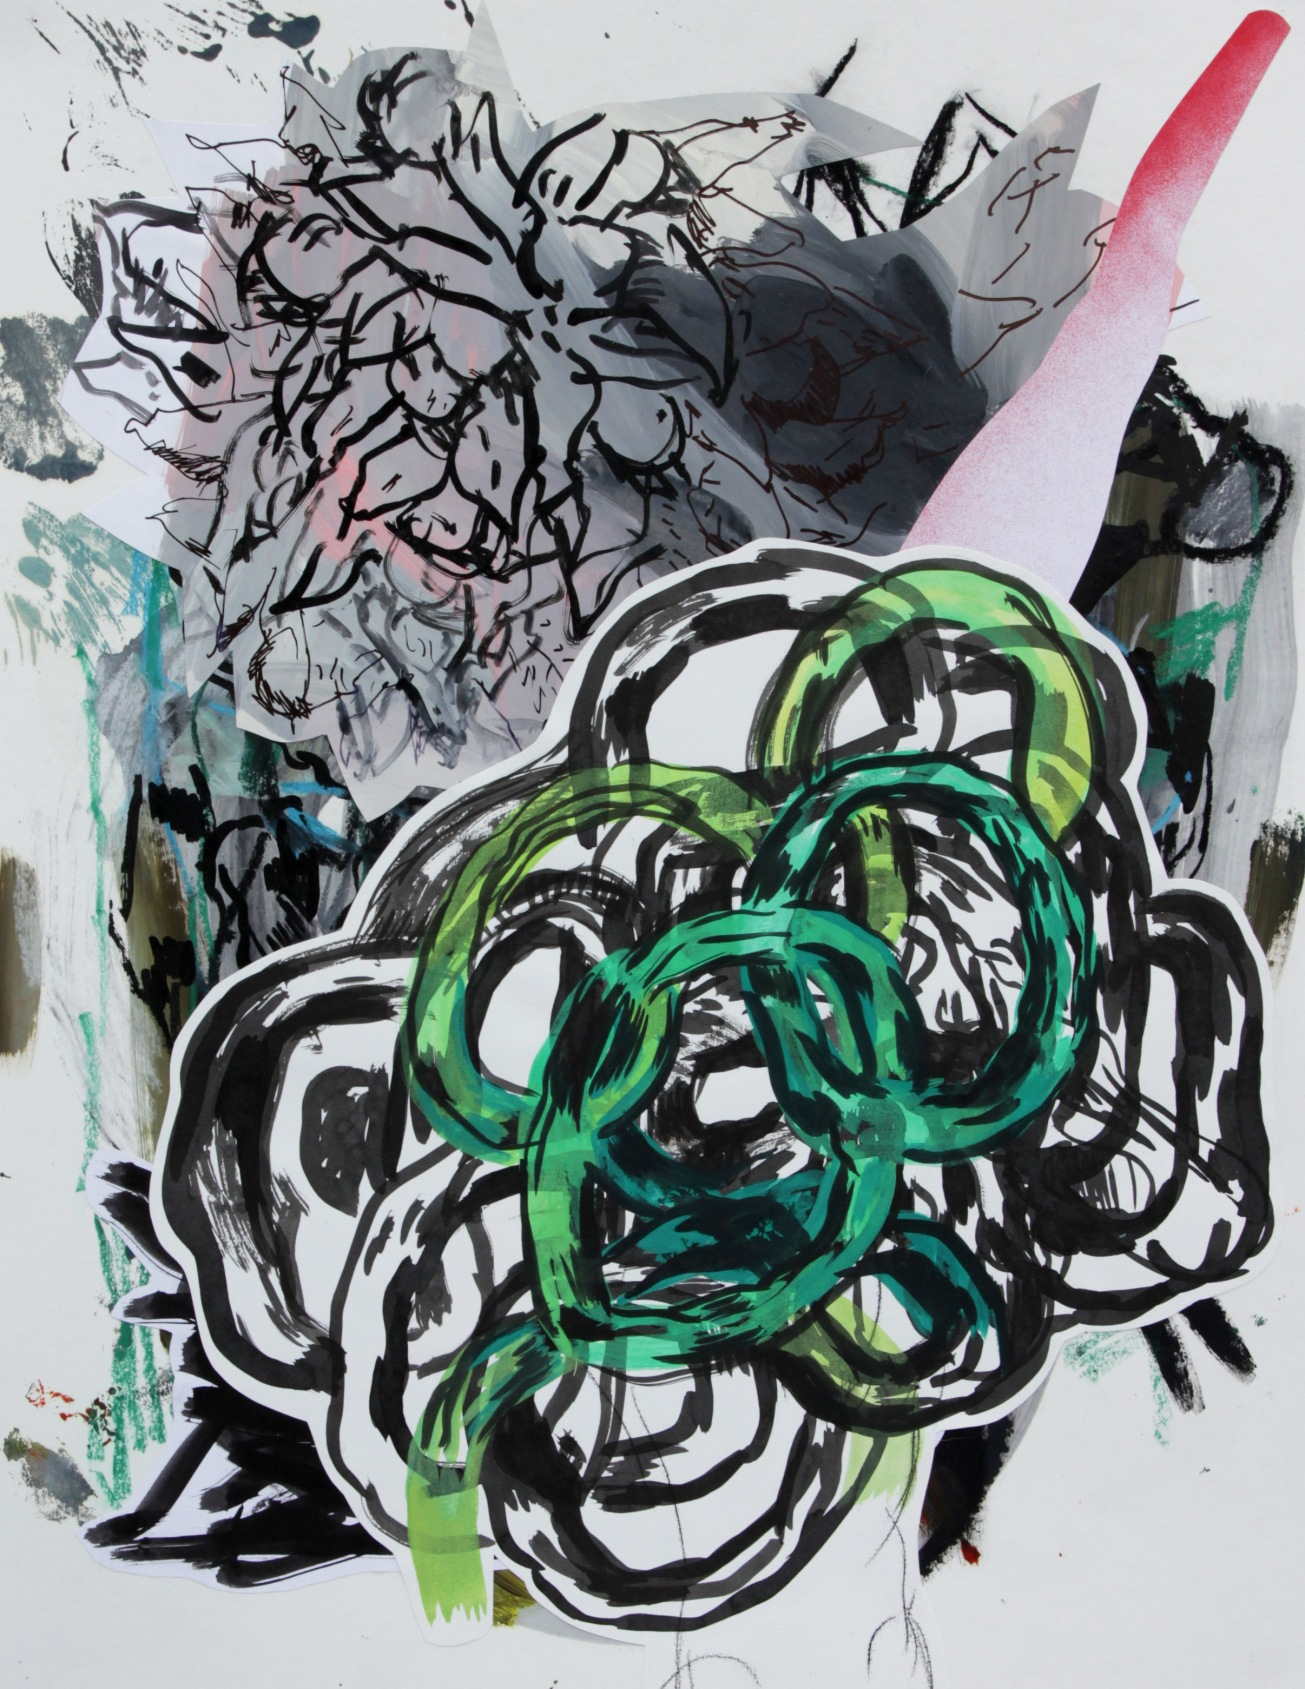 Emma Smith, Lotus we've changed your name , Mixed media on paper, 420 x 594 mm, 2010